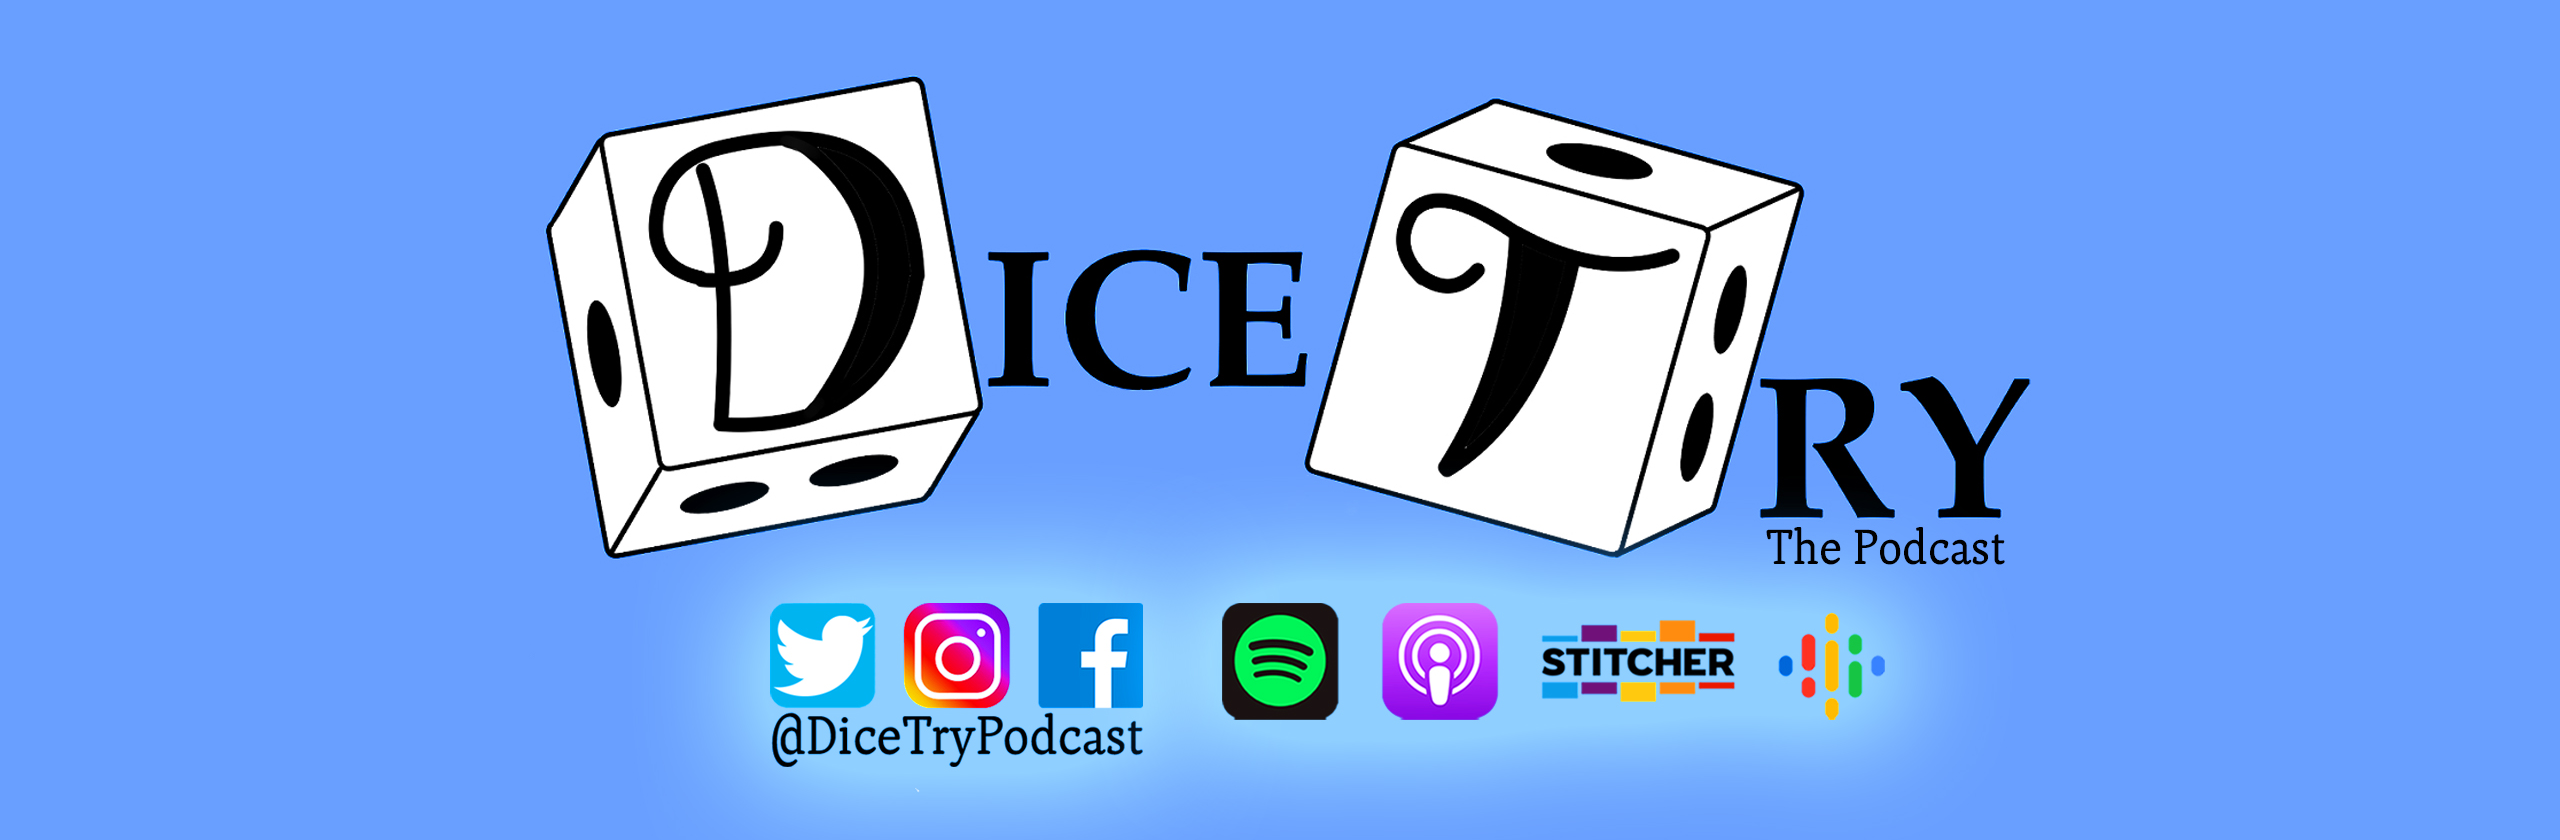 Dice Try The Podcast